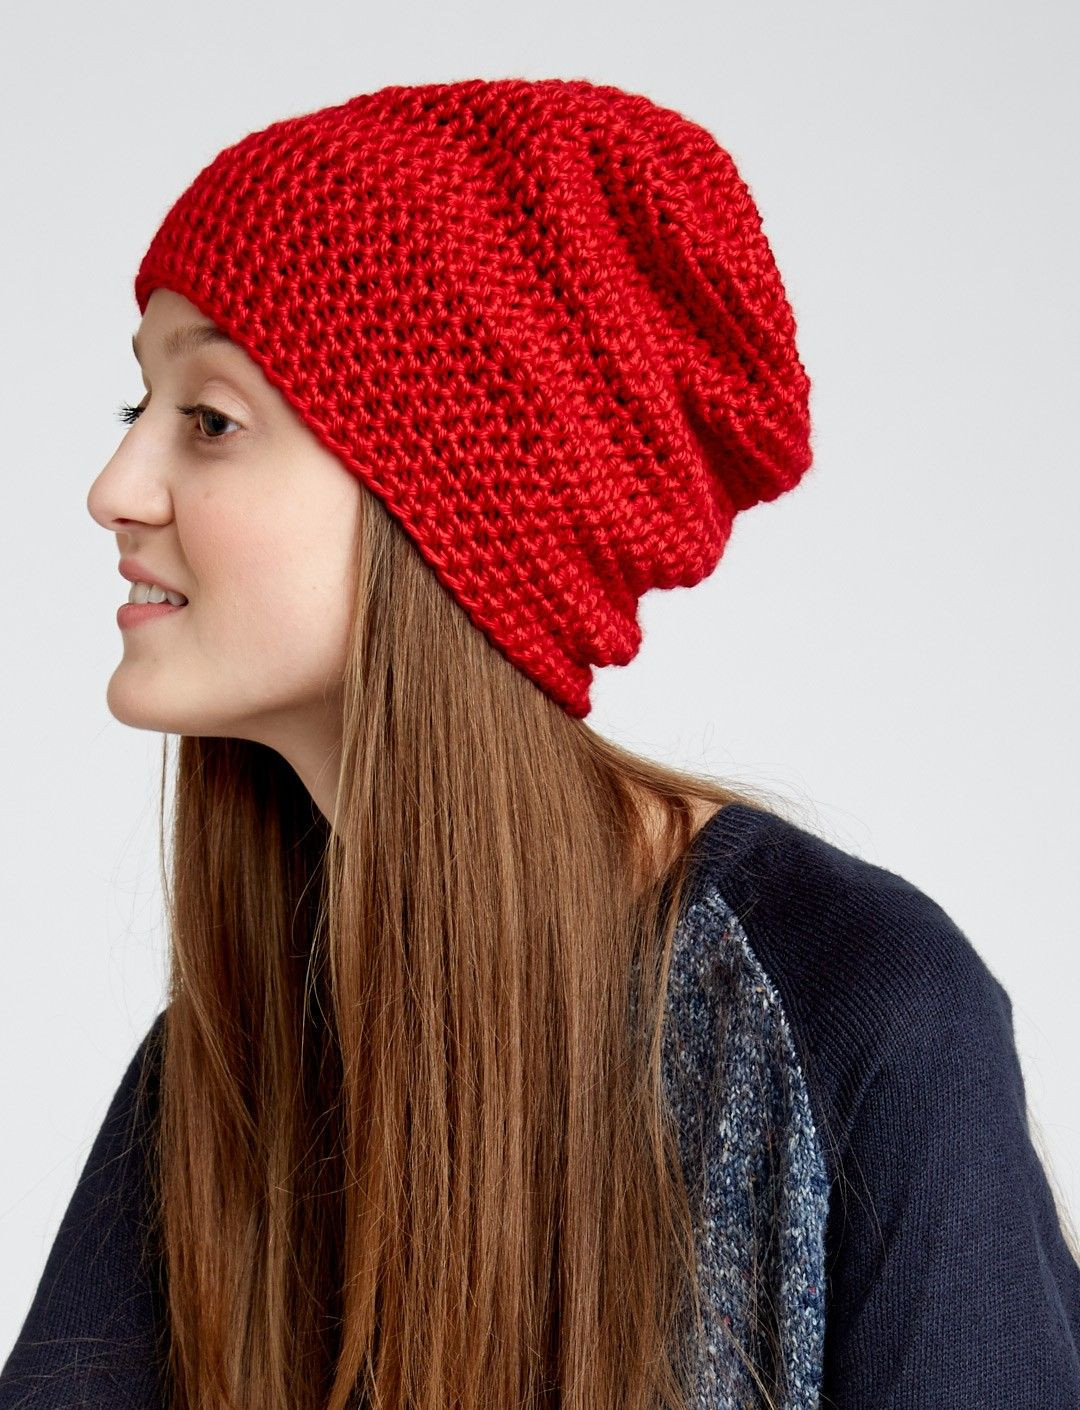 New Free Slouchy Beanie Pattern Intended for Beginners and It Red Slouchy Beanie Of New 50 Models Red Slouchy Beanie